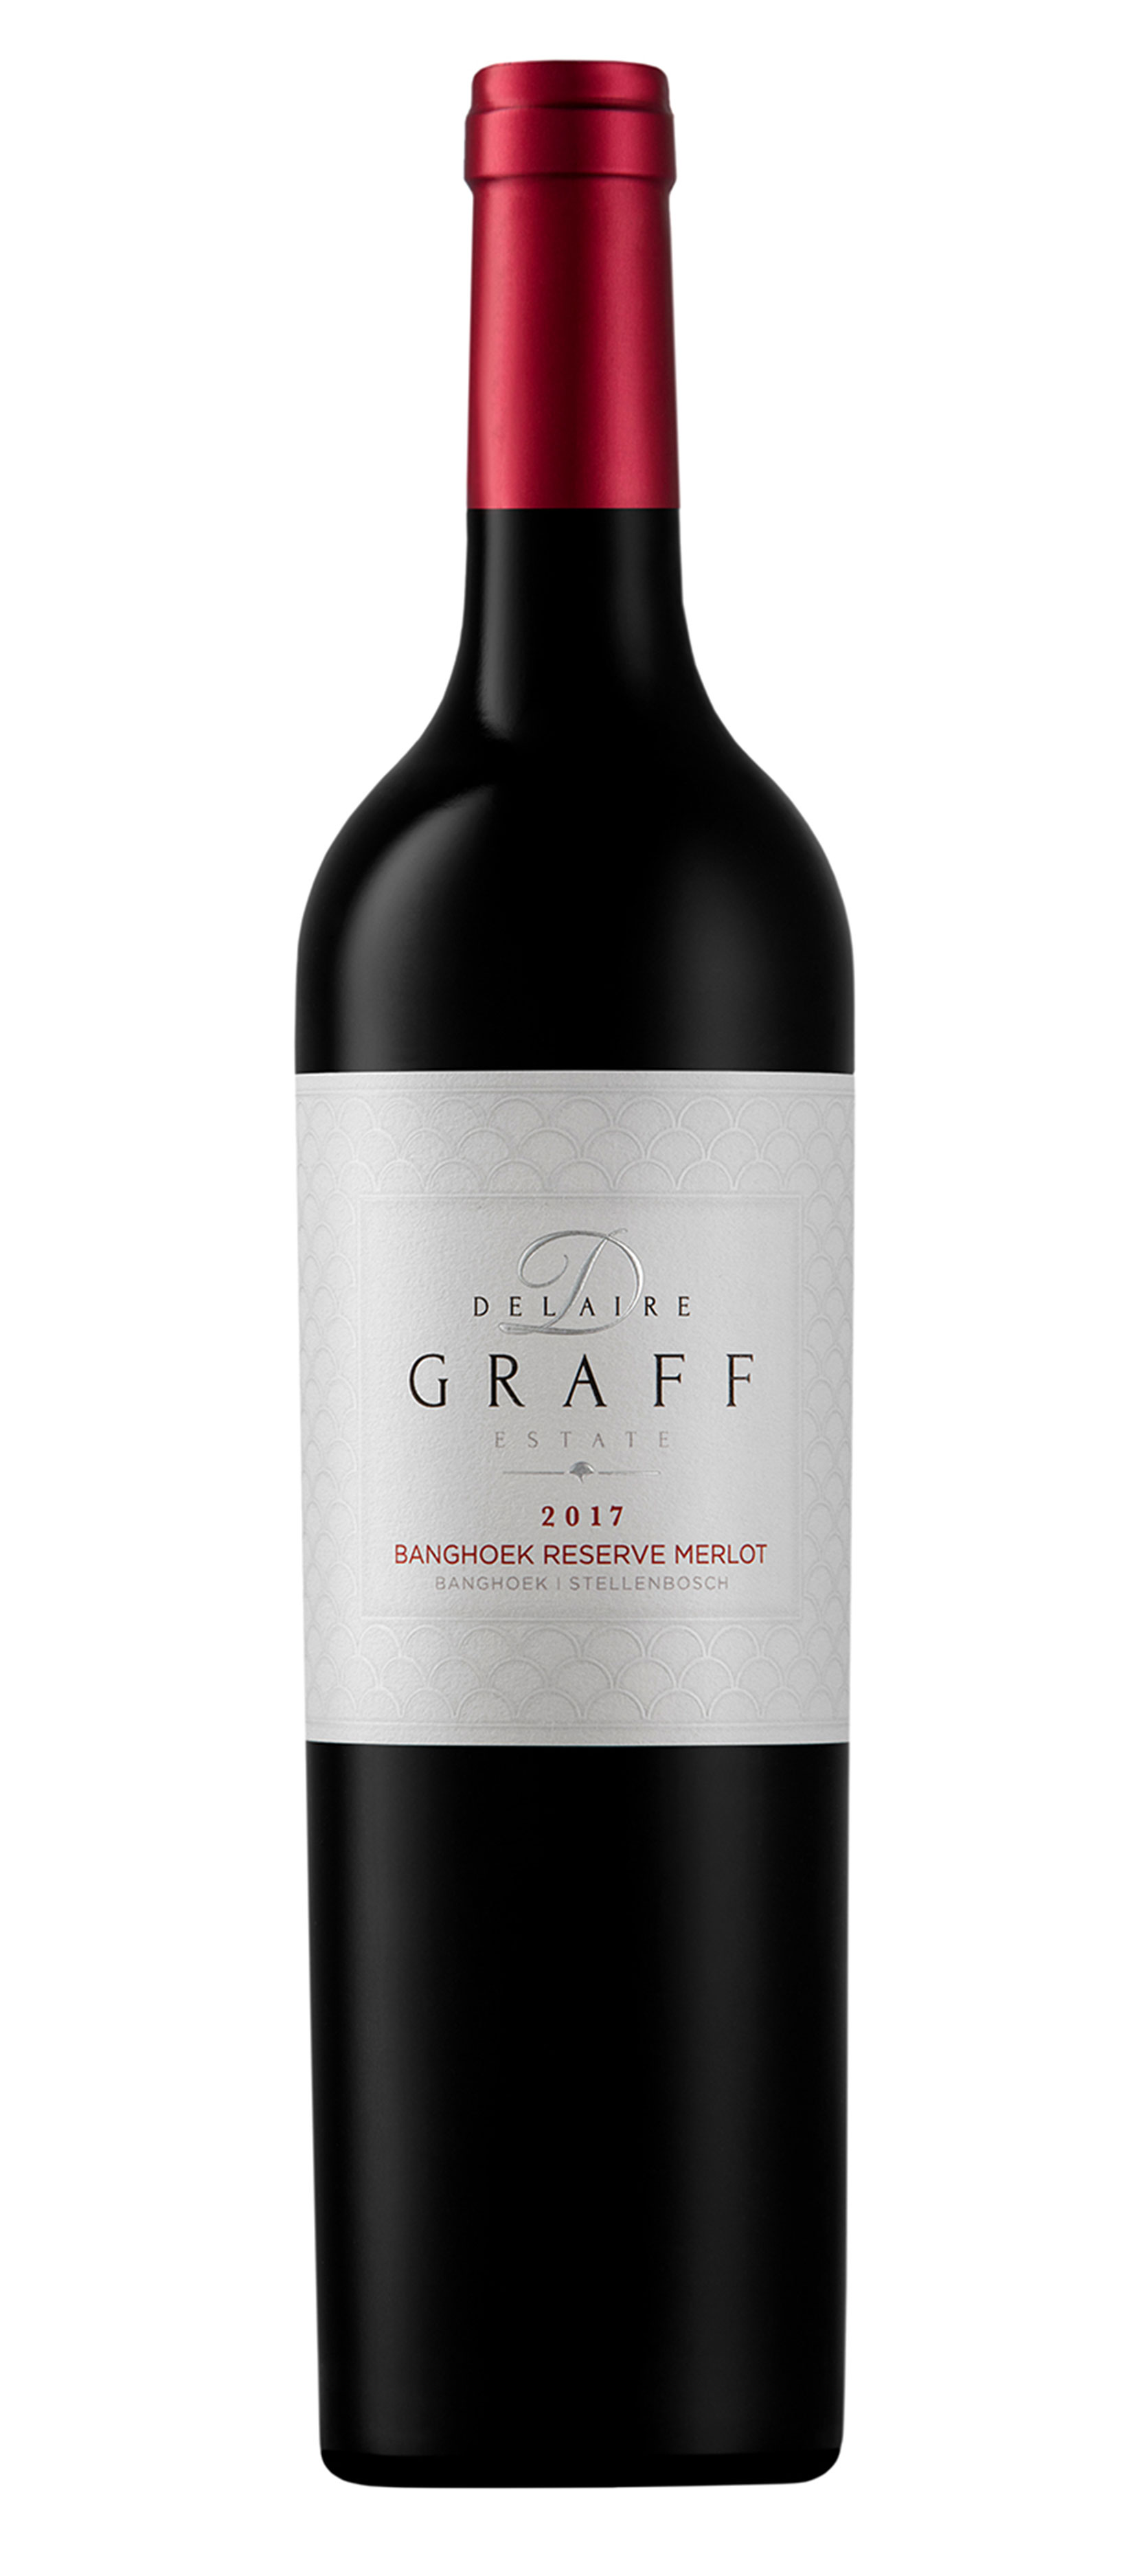 A bottle of Delaire Graff Banhoek Reserve Merlot 2017